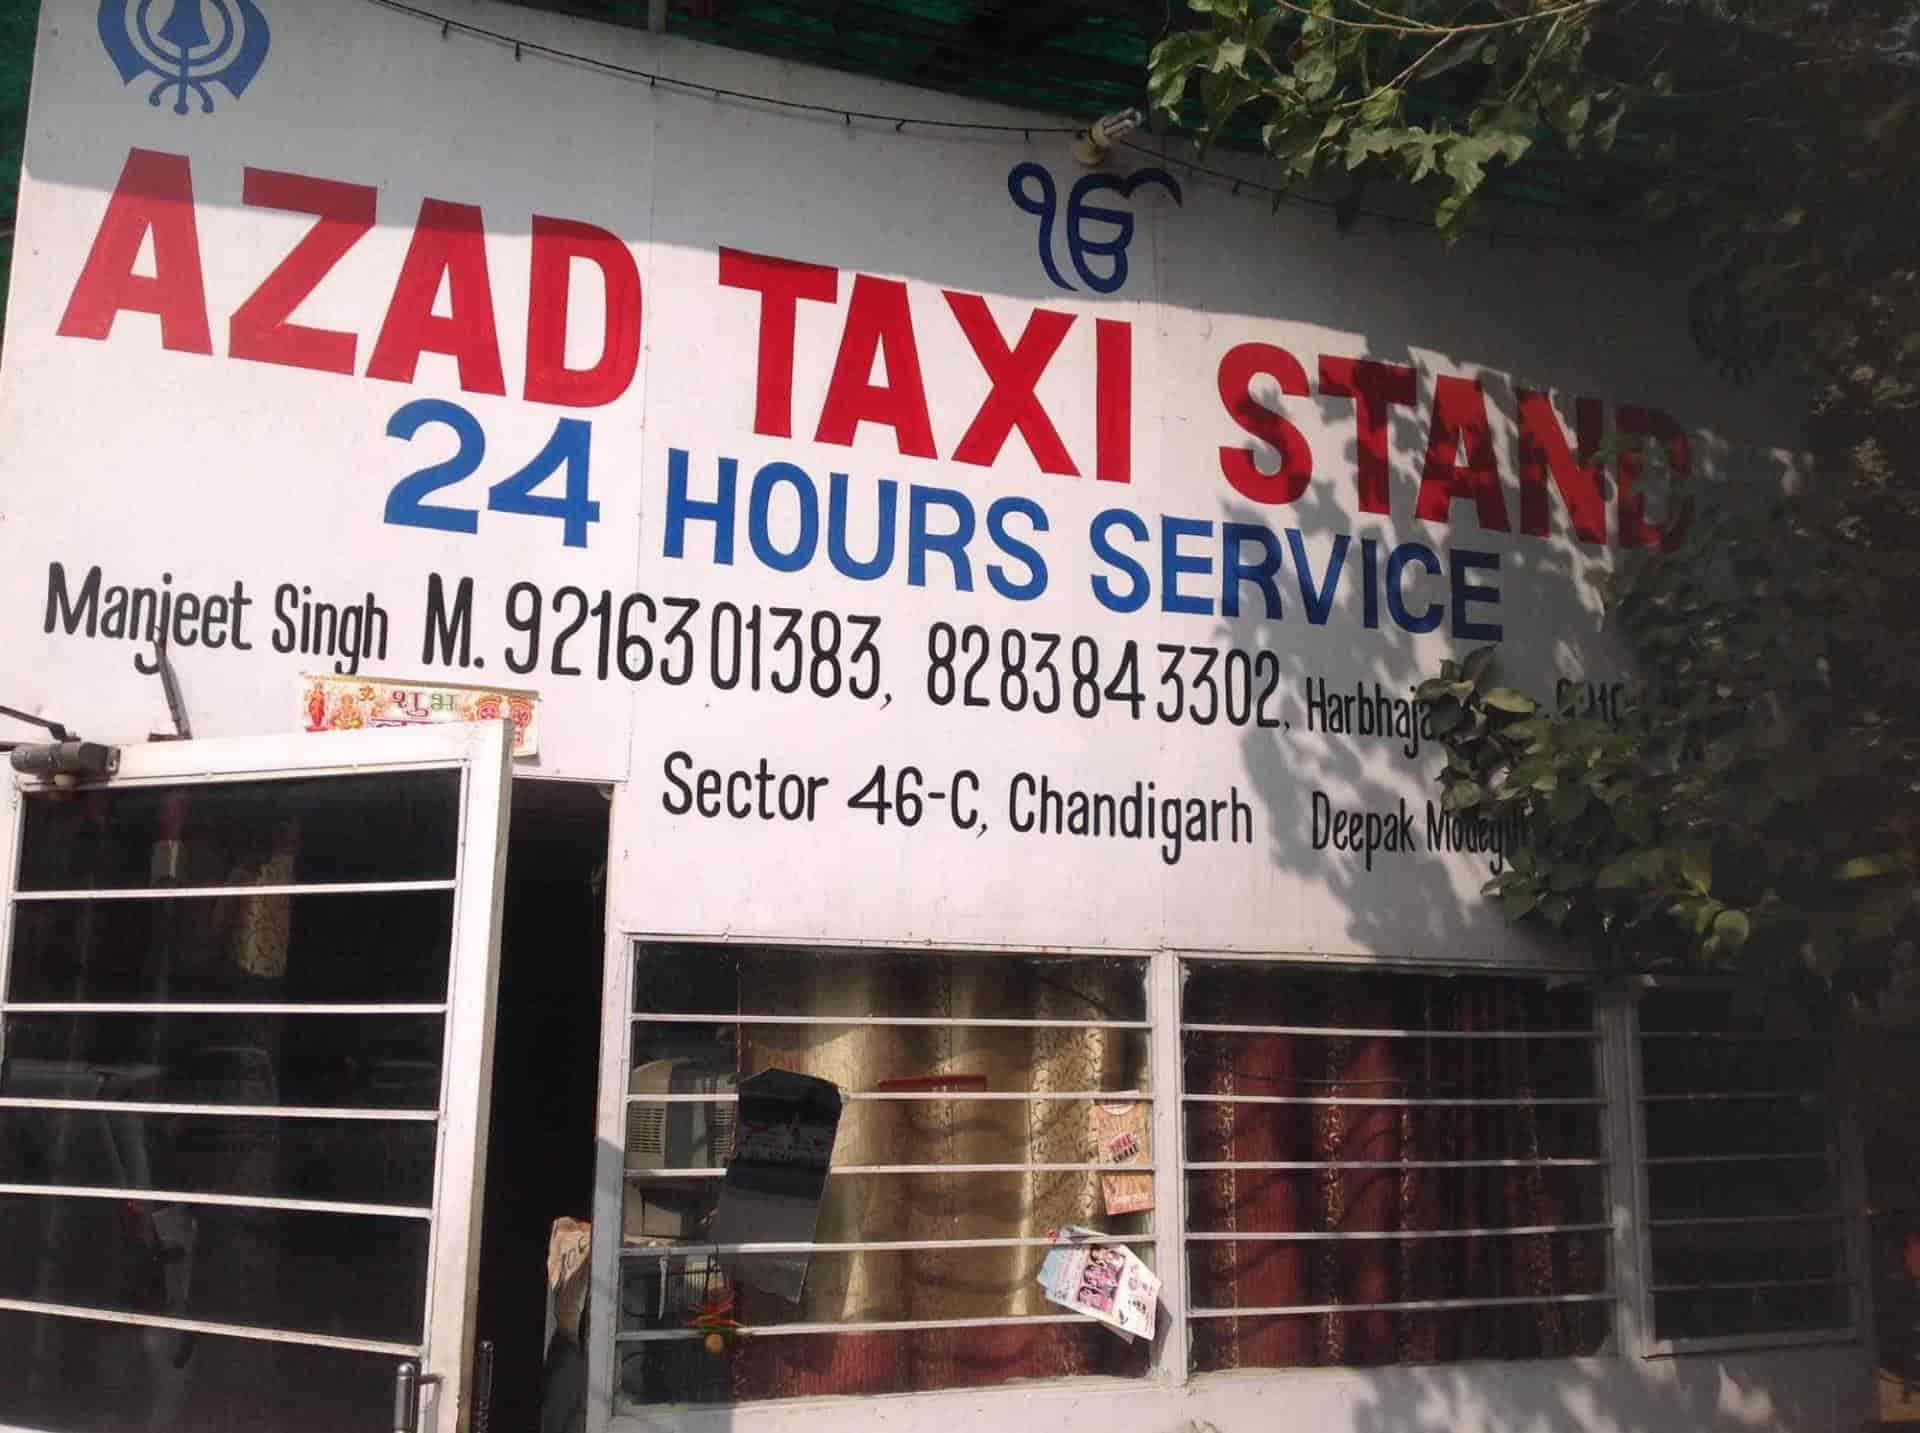 ATS Tour And Travel, Chandigarh Sector 46c - Taxi Services